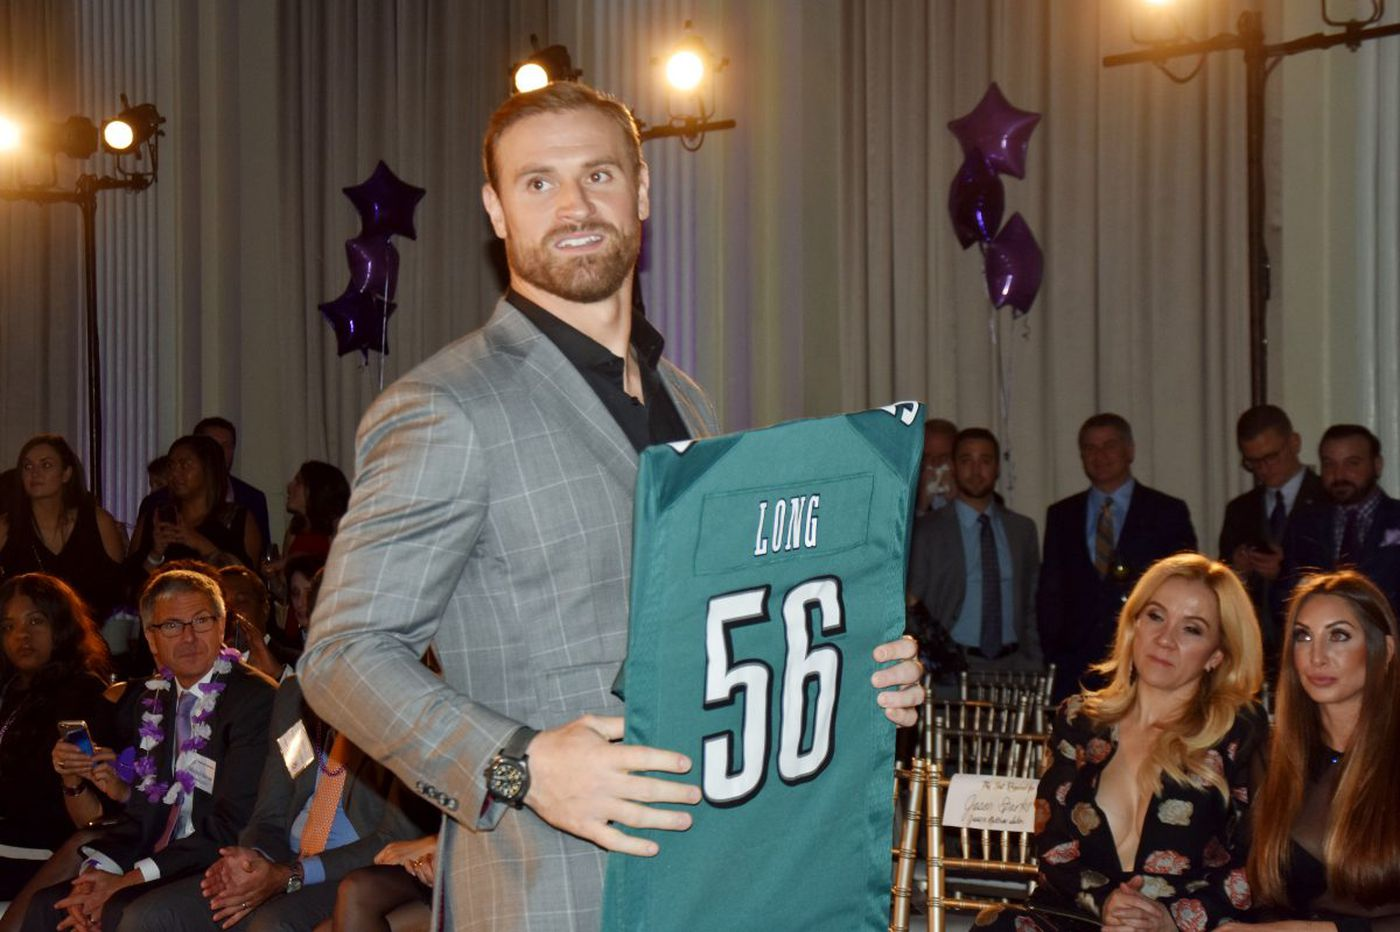 Chris Long the activist takes advantage of his NFL platform with Eagles